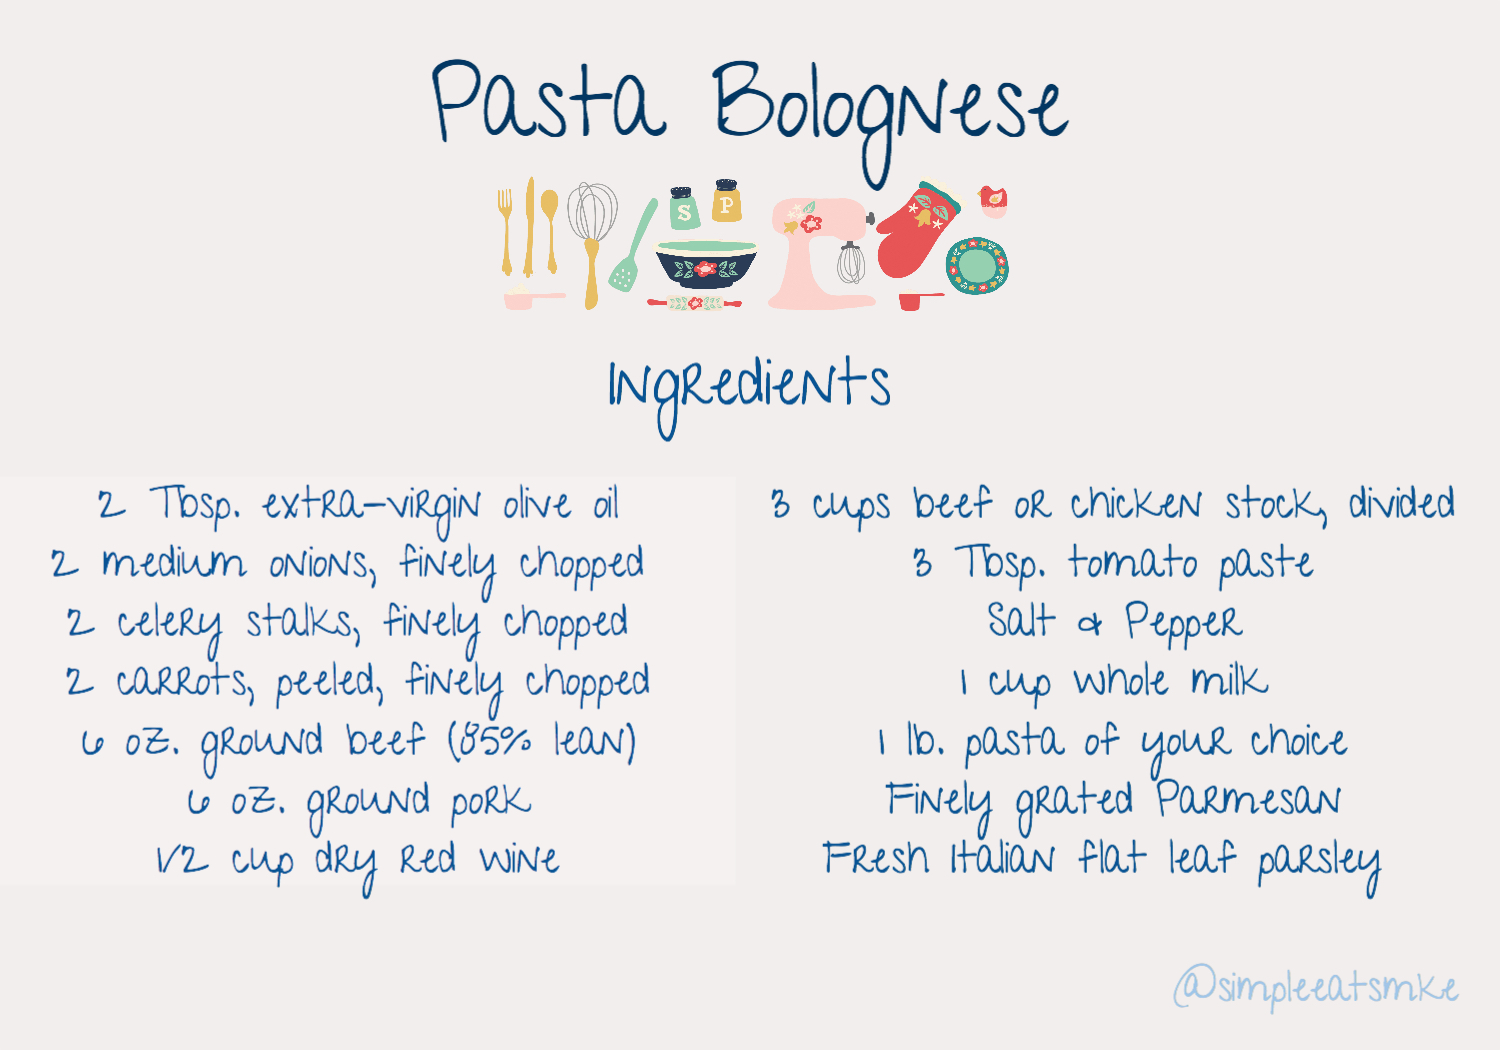 7%2F13 Pasta Bolognese Ingredients.jpg